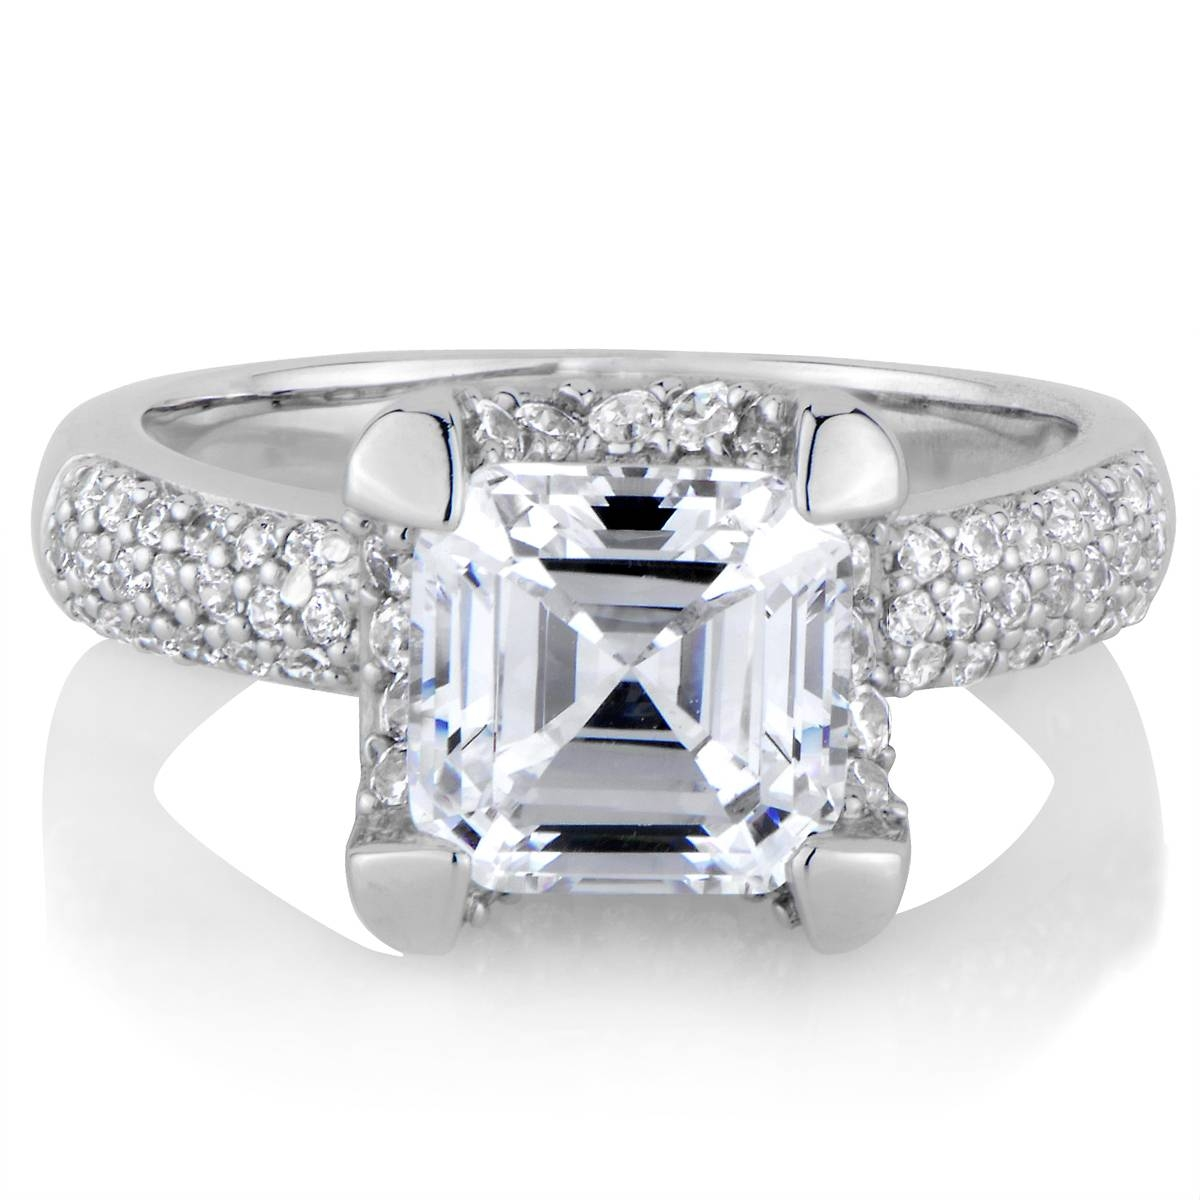 Talitha's Imitation Engagement Ring: Asscher Cut Cz Throughout Asscher Diamond Engagement Rings (View 15 of 15)